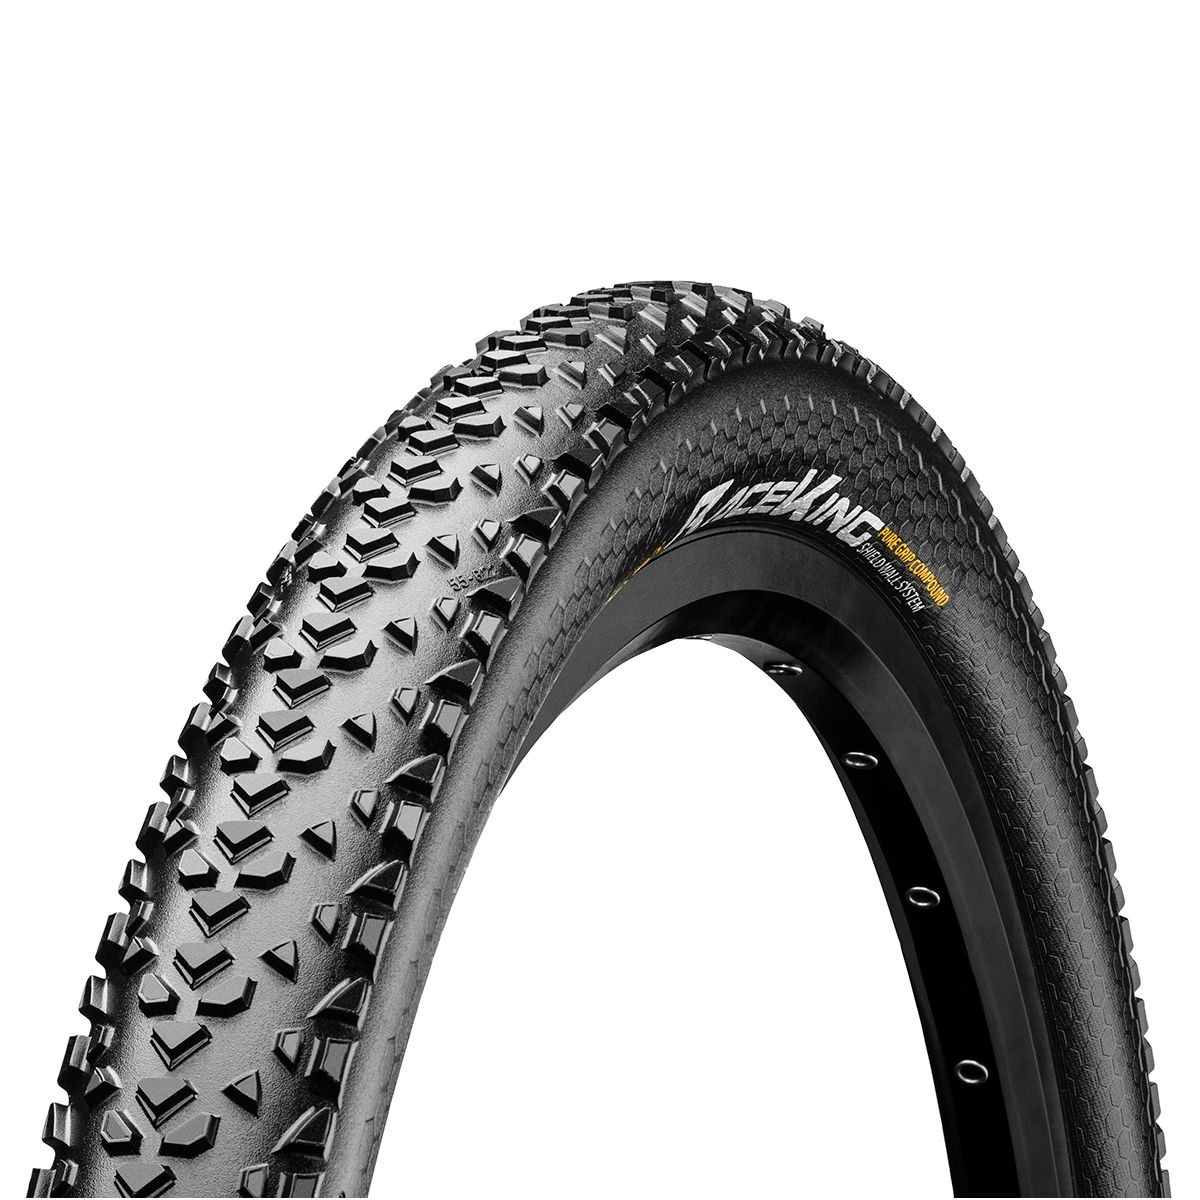 Race King Performance MTB folding tyre